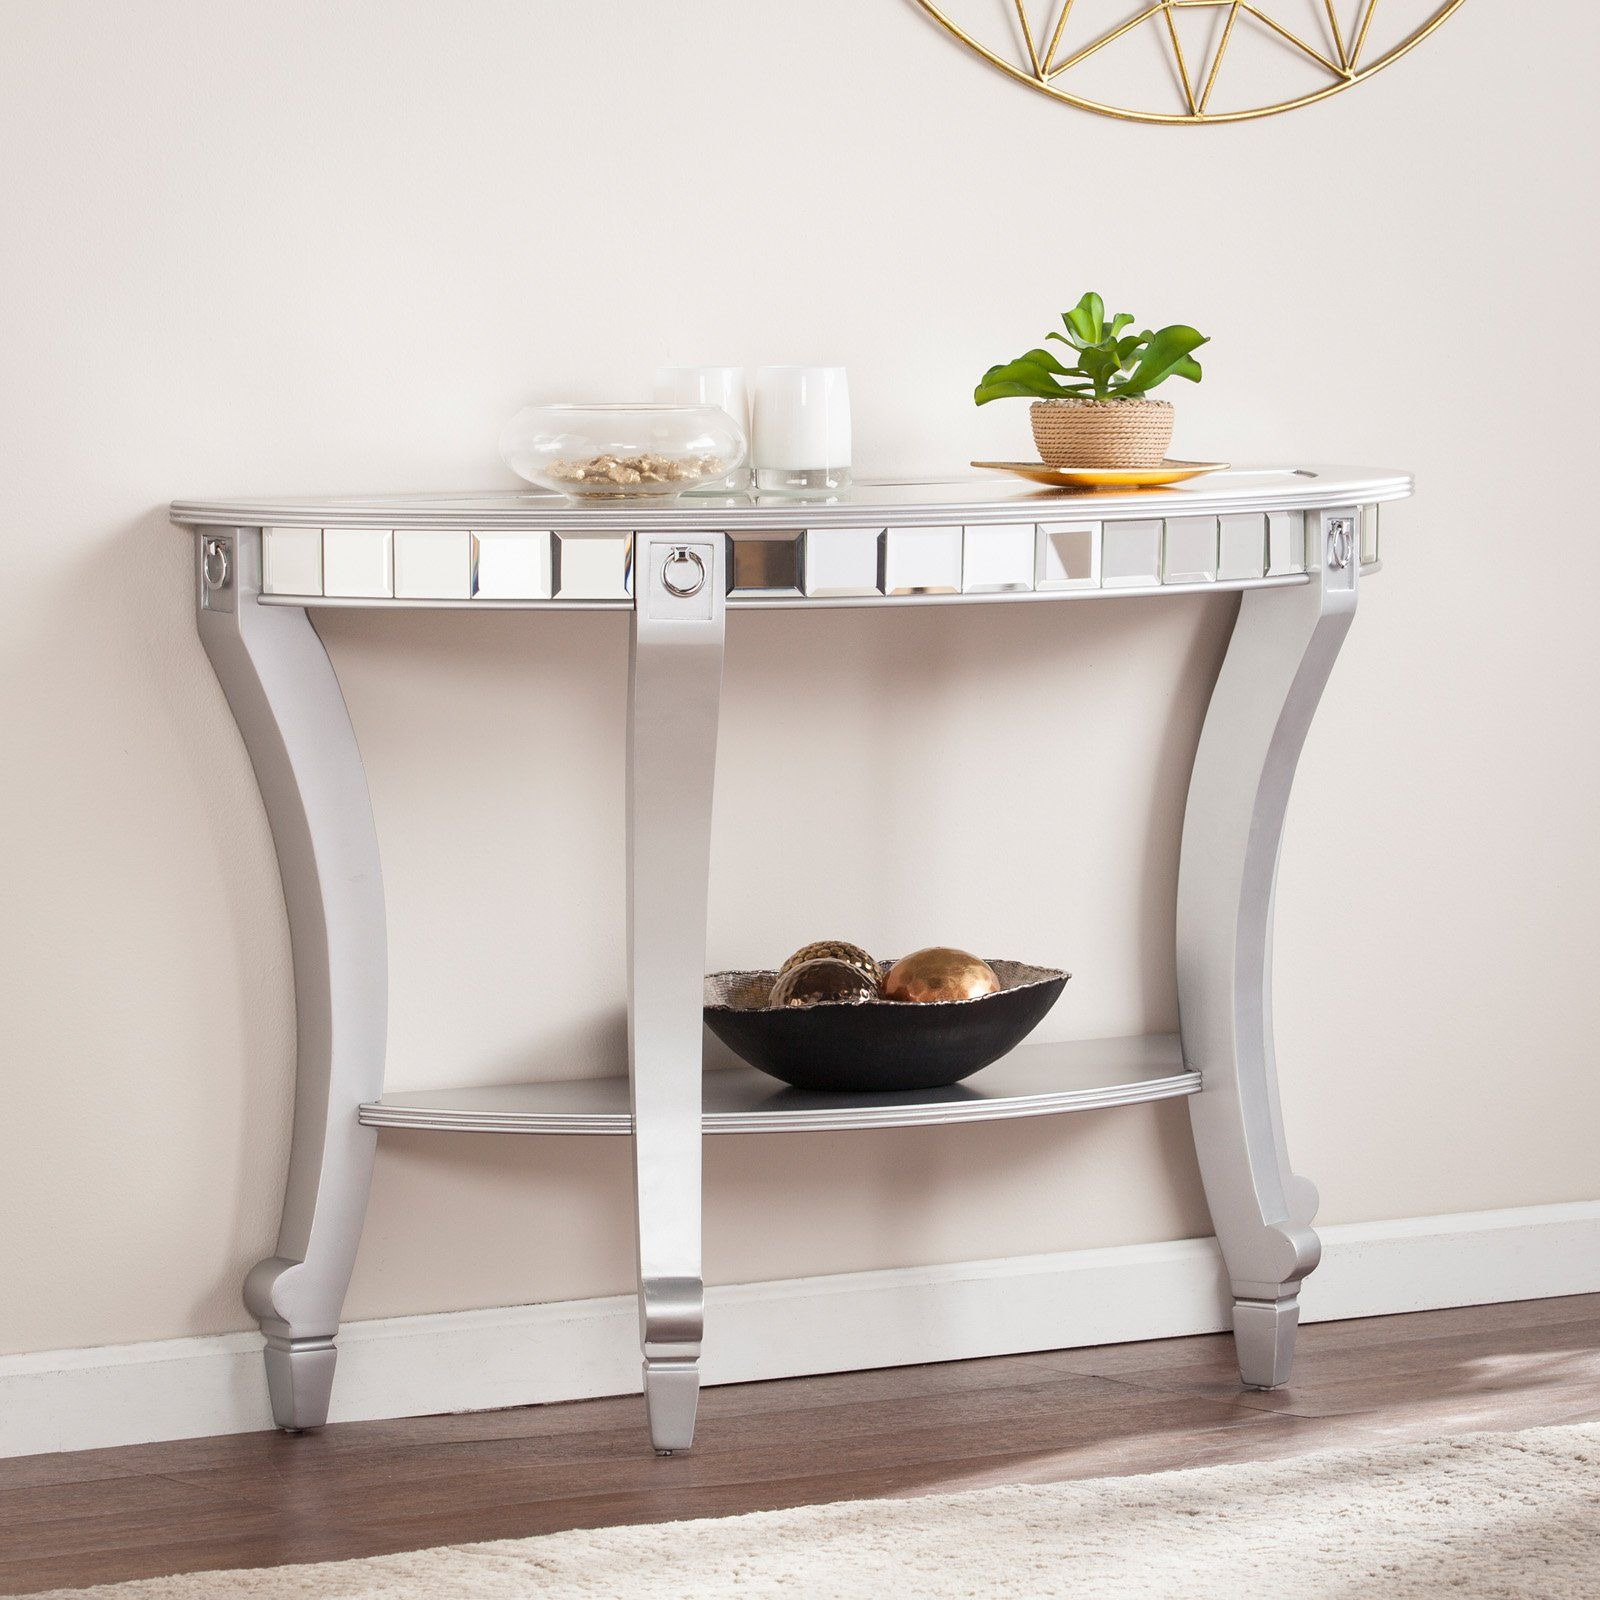 Southern Enterprises Lindsay Glam Mirrored Demilune Console Table Matte Silver Mirrored Console Table Console Table Silver Console Table